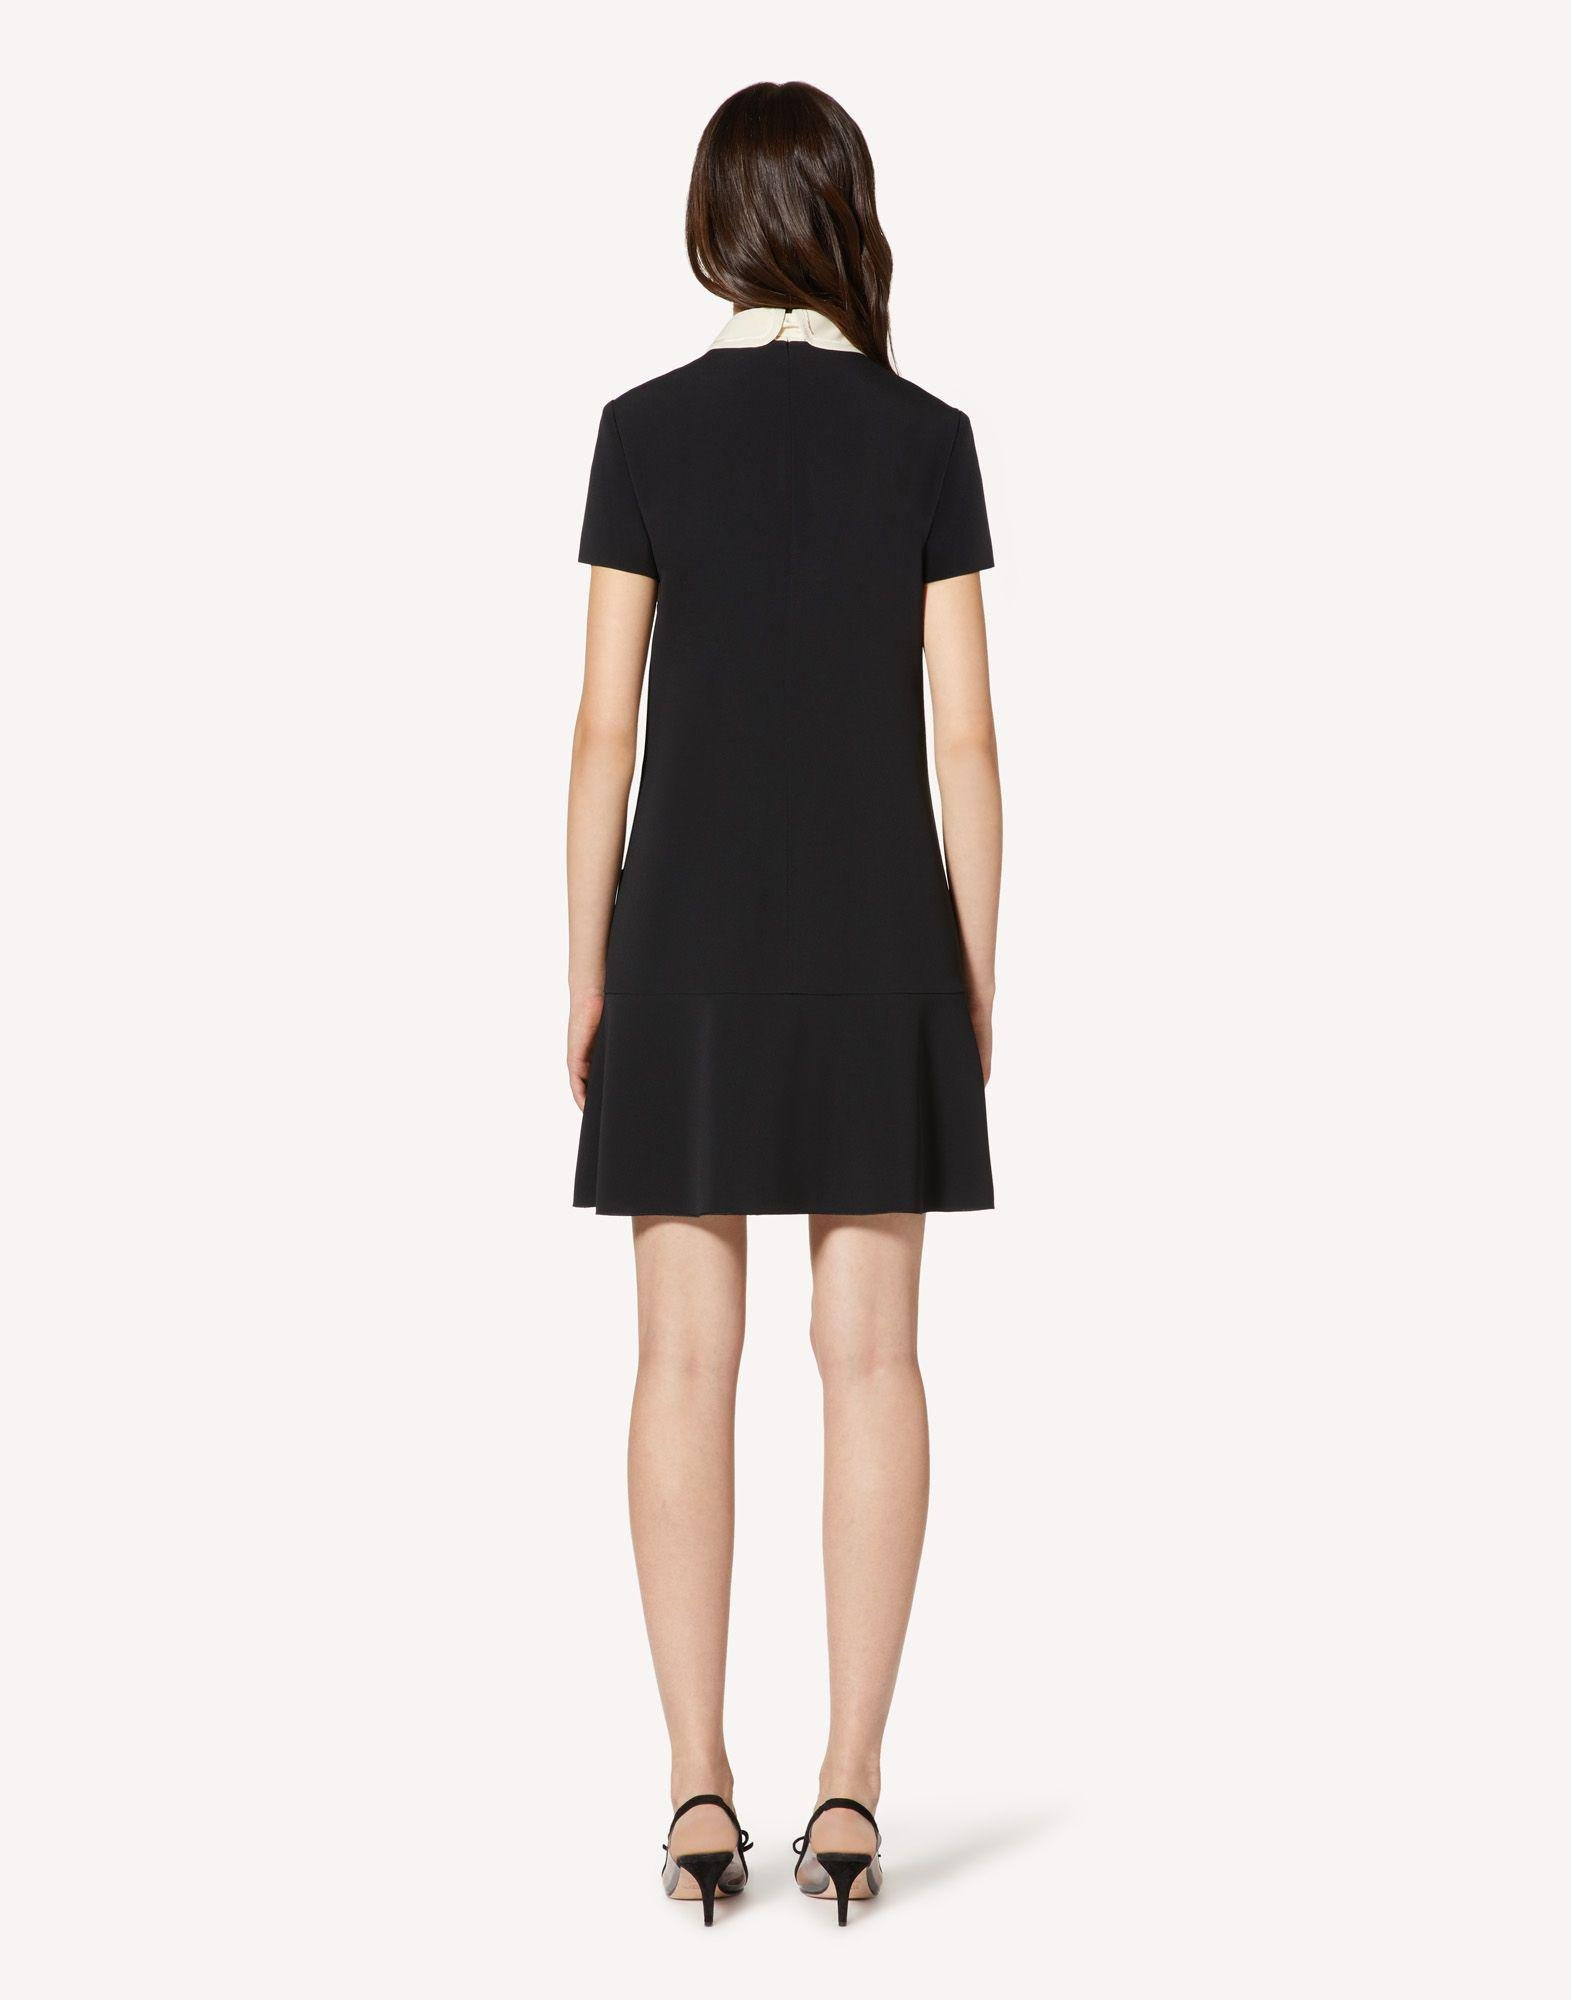 FRISOTTINO DRESS WITH COLLAR DETAIL 1